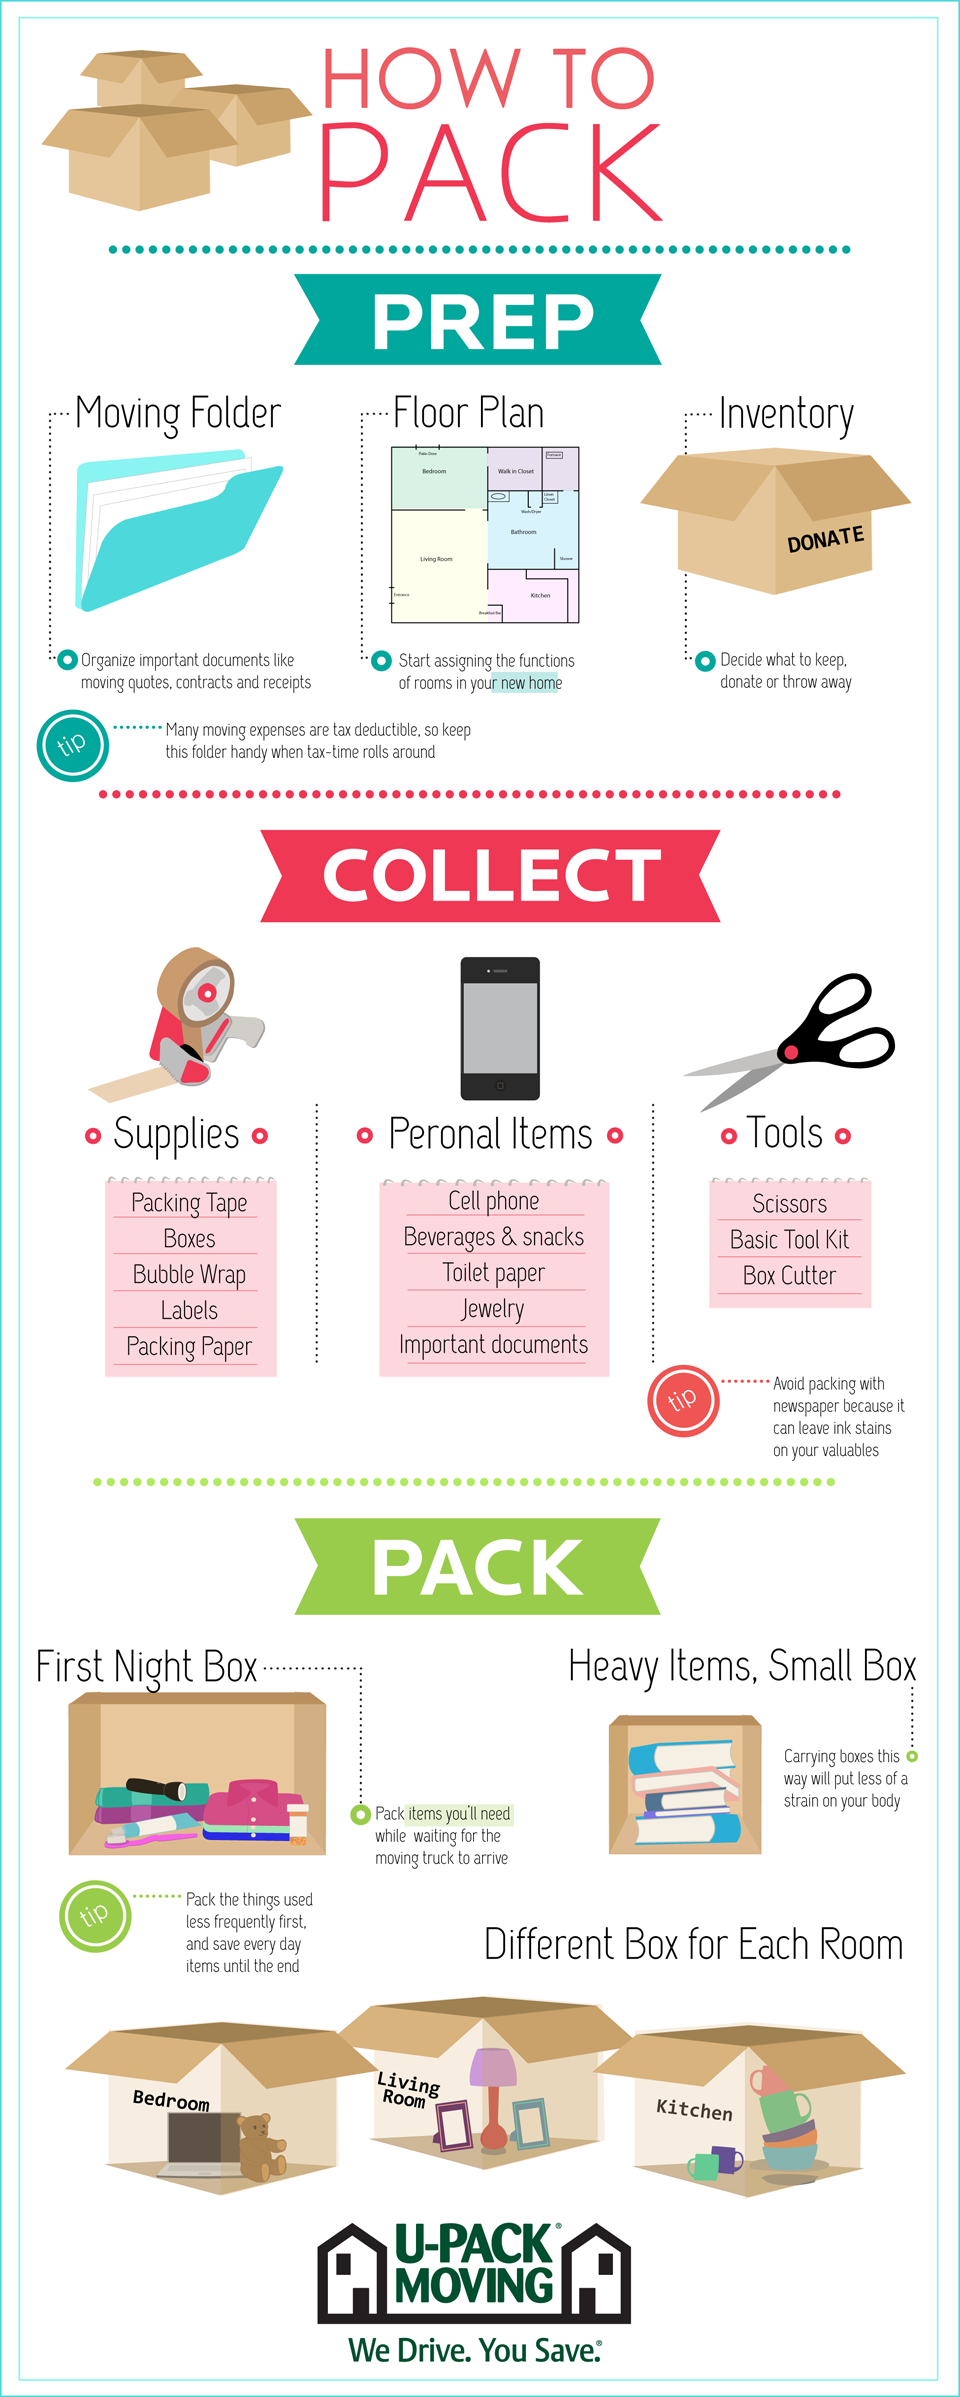 How to pack for moving. Usually a moving company has done it for me. Good to know!